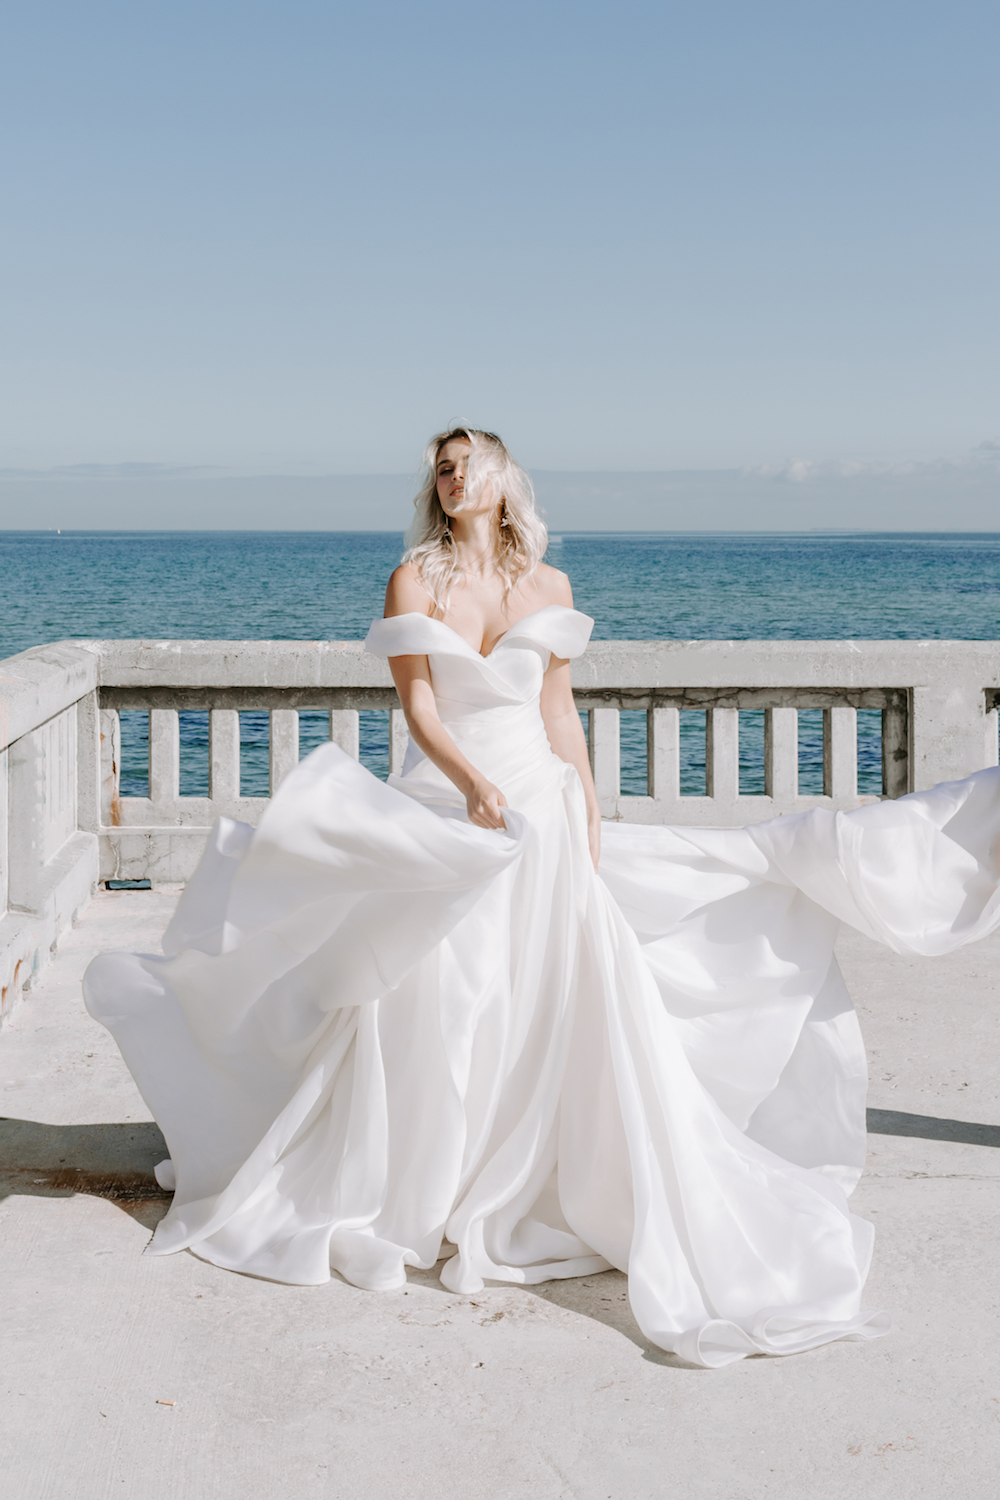 Mariana Hardwick wedding dress featured on the LOVE FIND CO. Editorial - Volume Five